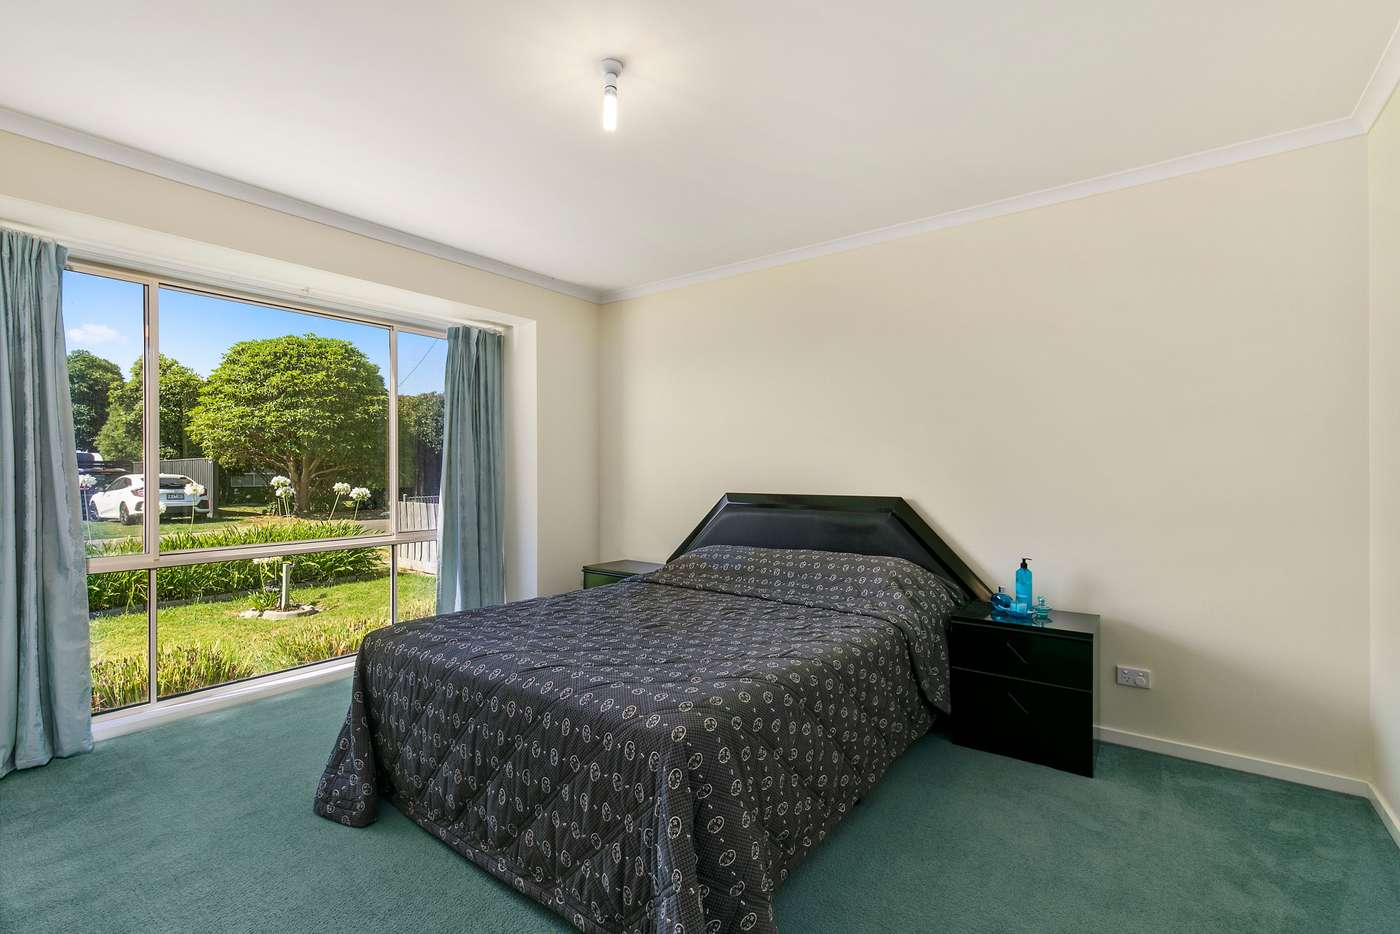 Sixth view of Homely house listing, 17 Carapooka Way, Cowes VIC 3922